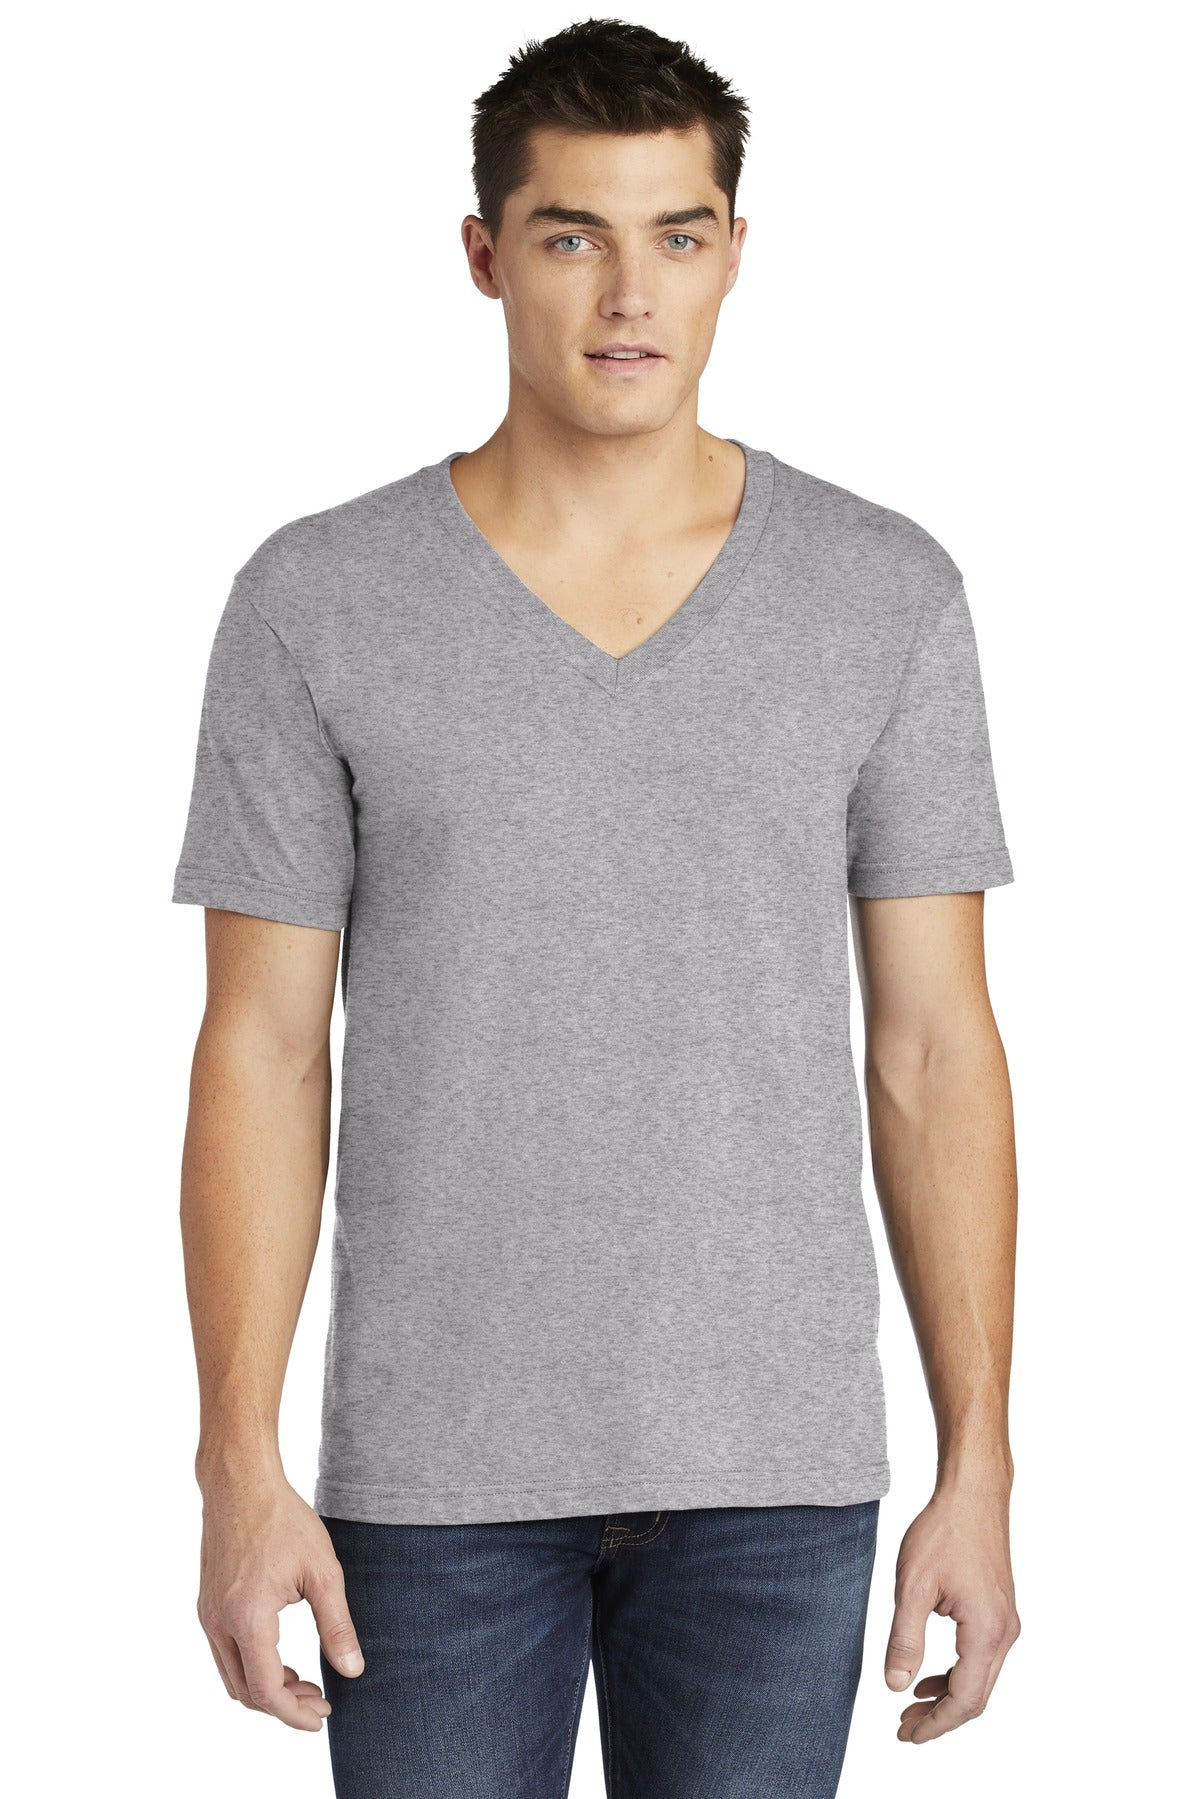 American Apparel & Fine Jersey V-Neck T-Shirt.